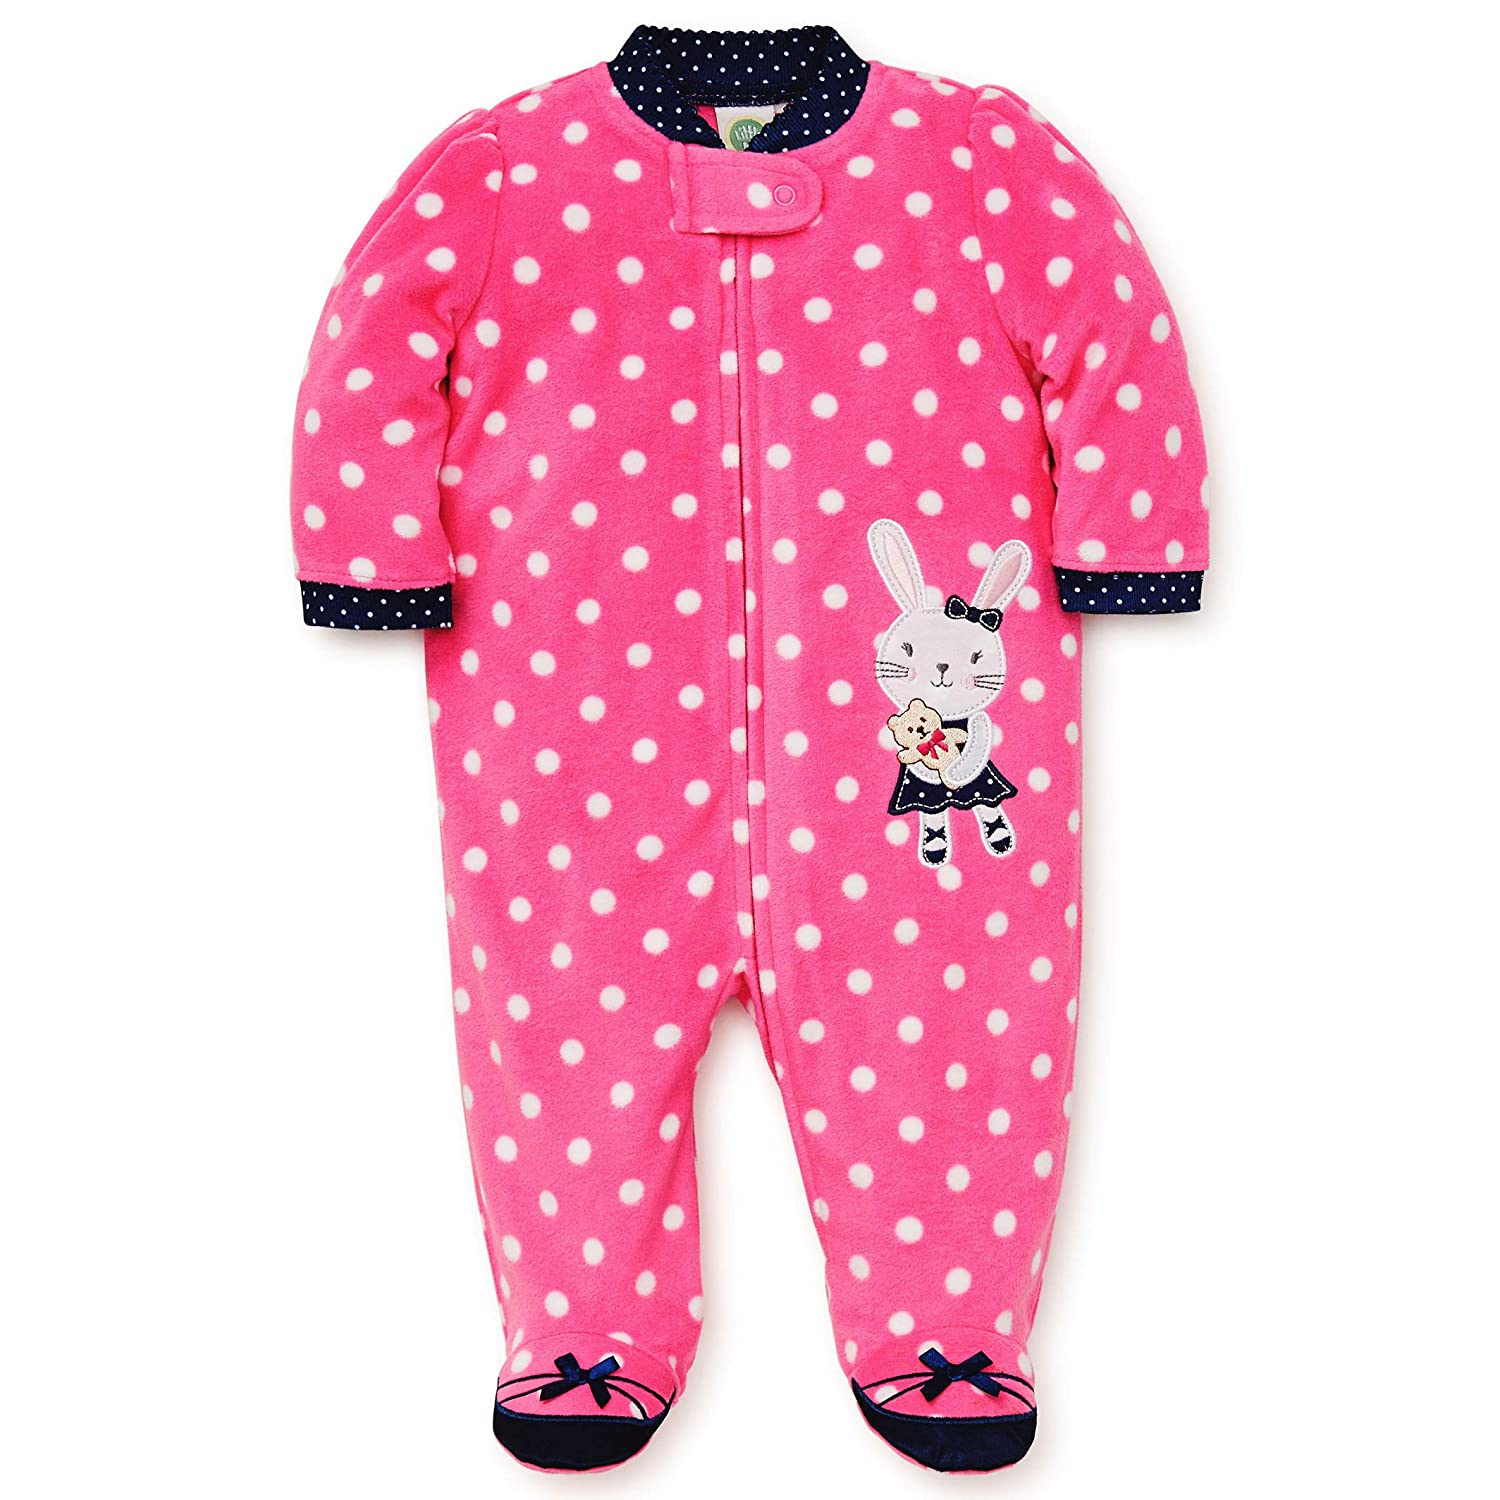 Amazon.com  Little Me Winter Fleece Baby Pajamas with Feet Blanket Sleeper  Footie Bunny Pink 12 Month  Baby 1de0caea5